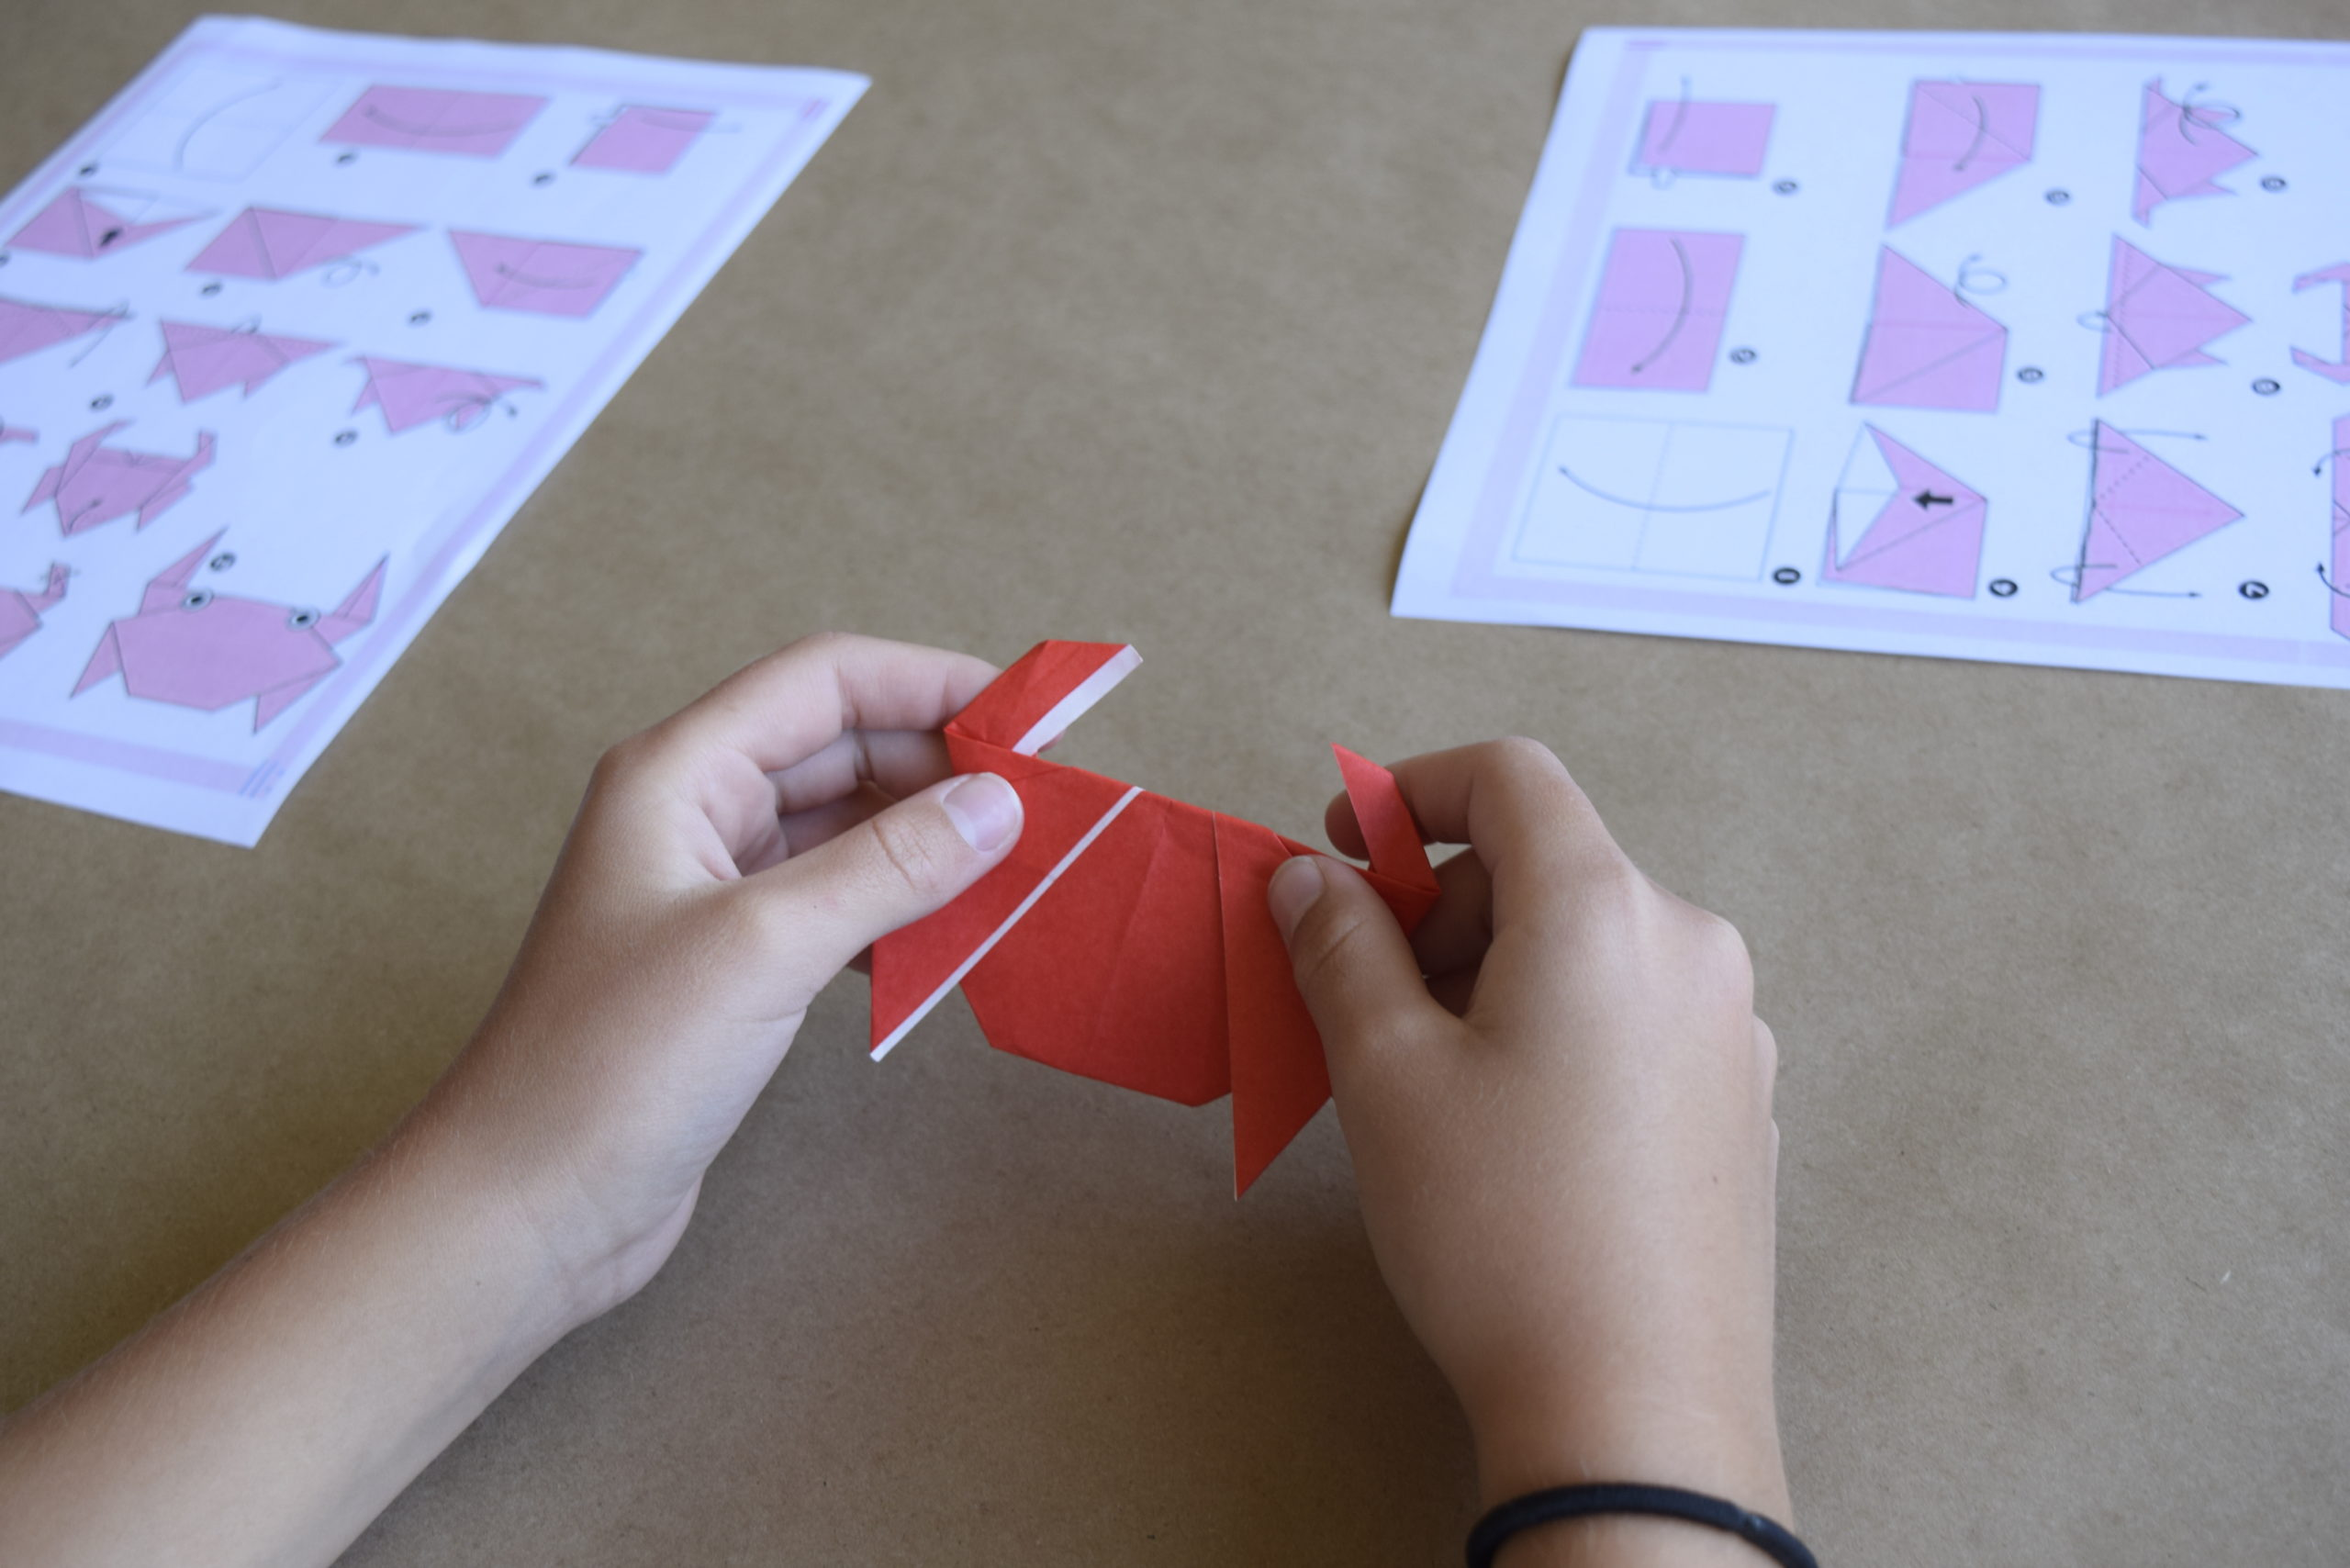 A child's hand folds an oragami butterfly